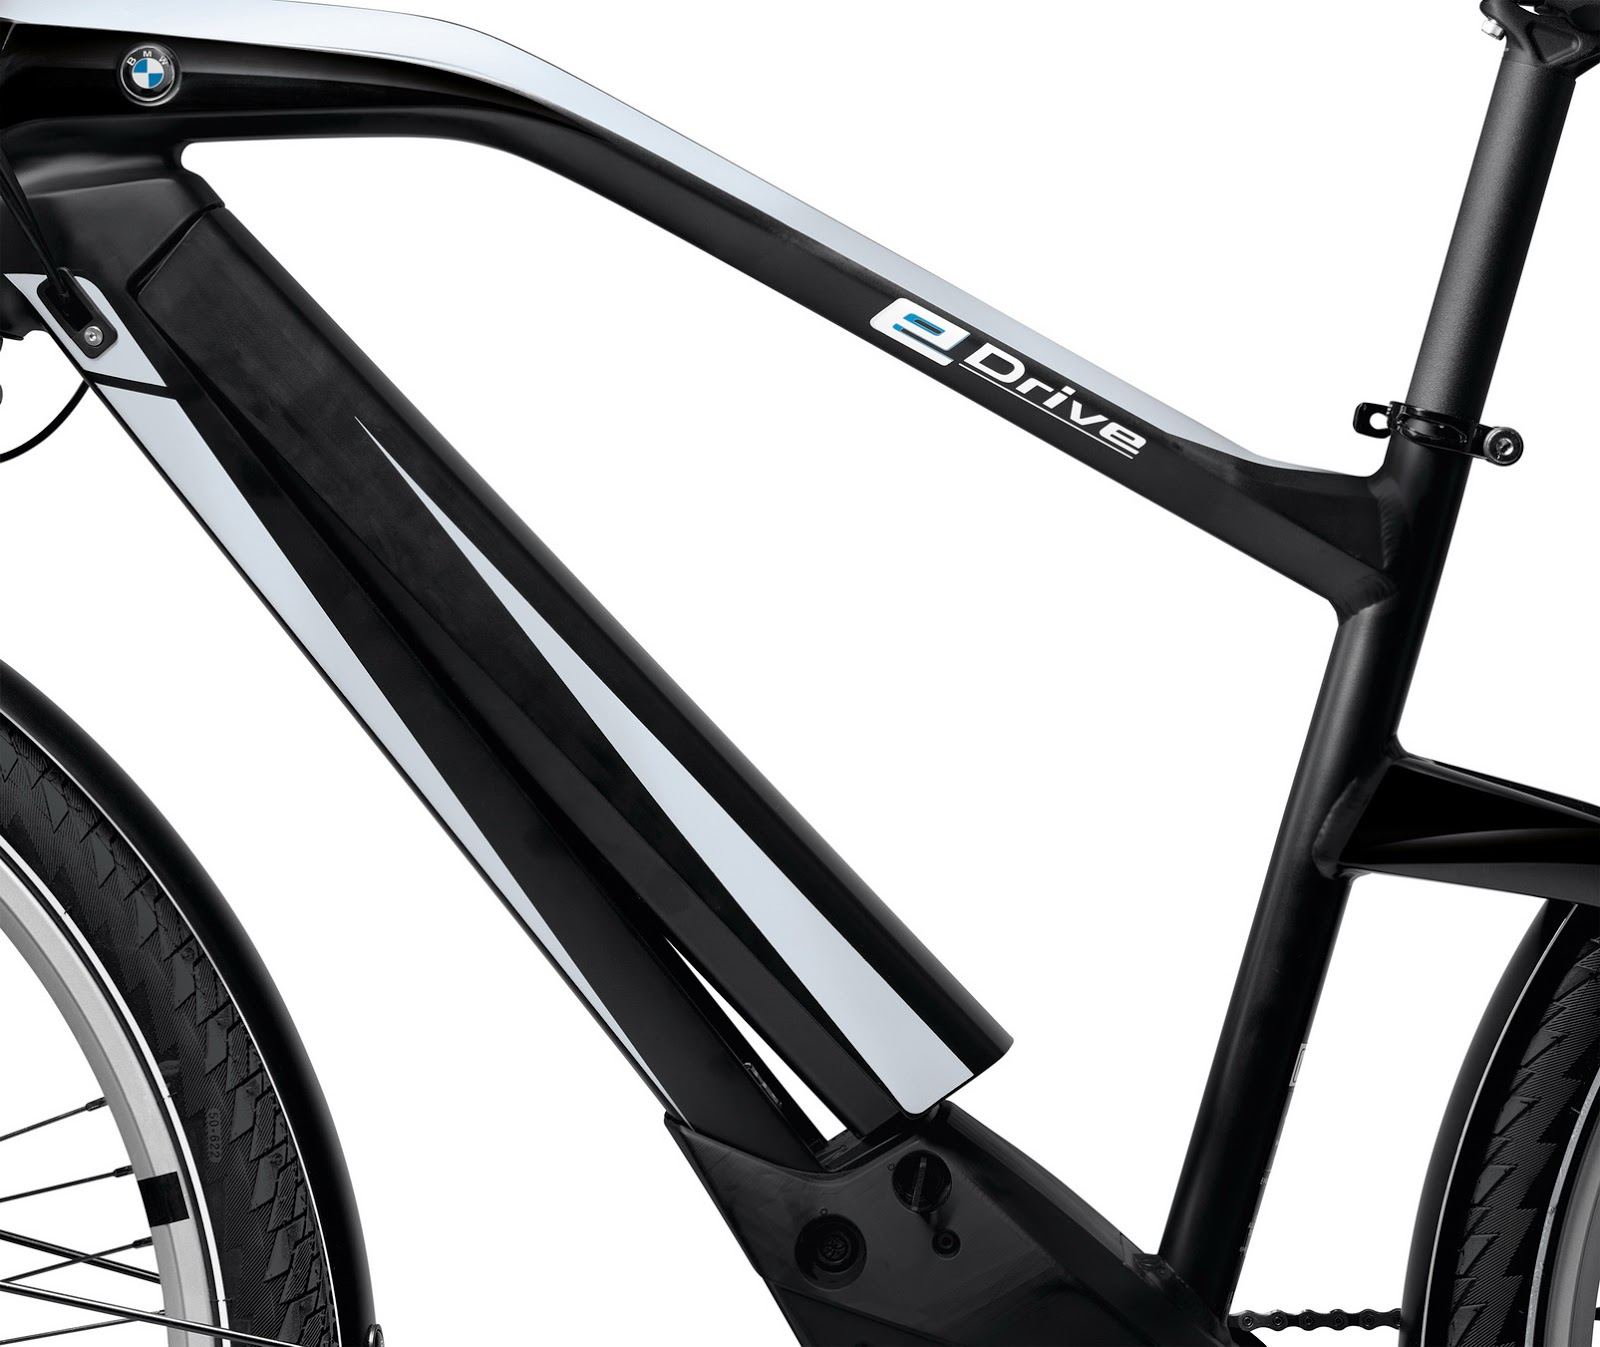 BMW_Active_Hybrid_e-bike_02